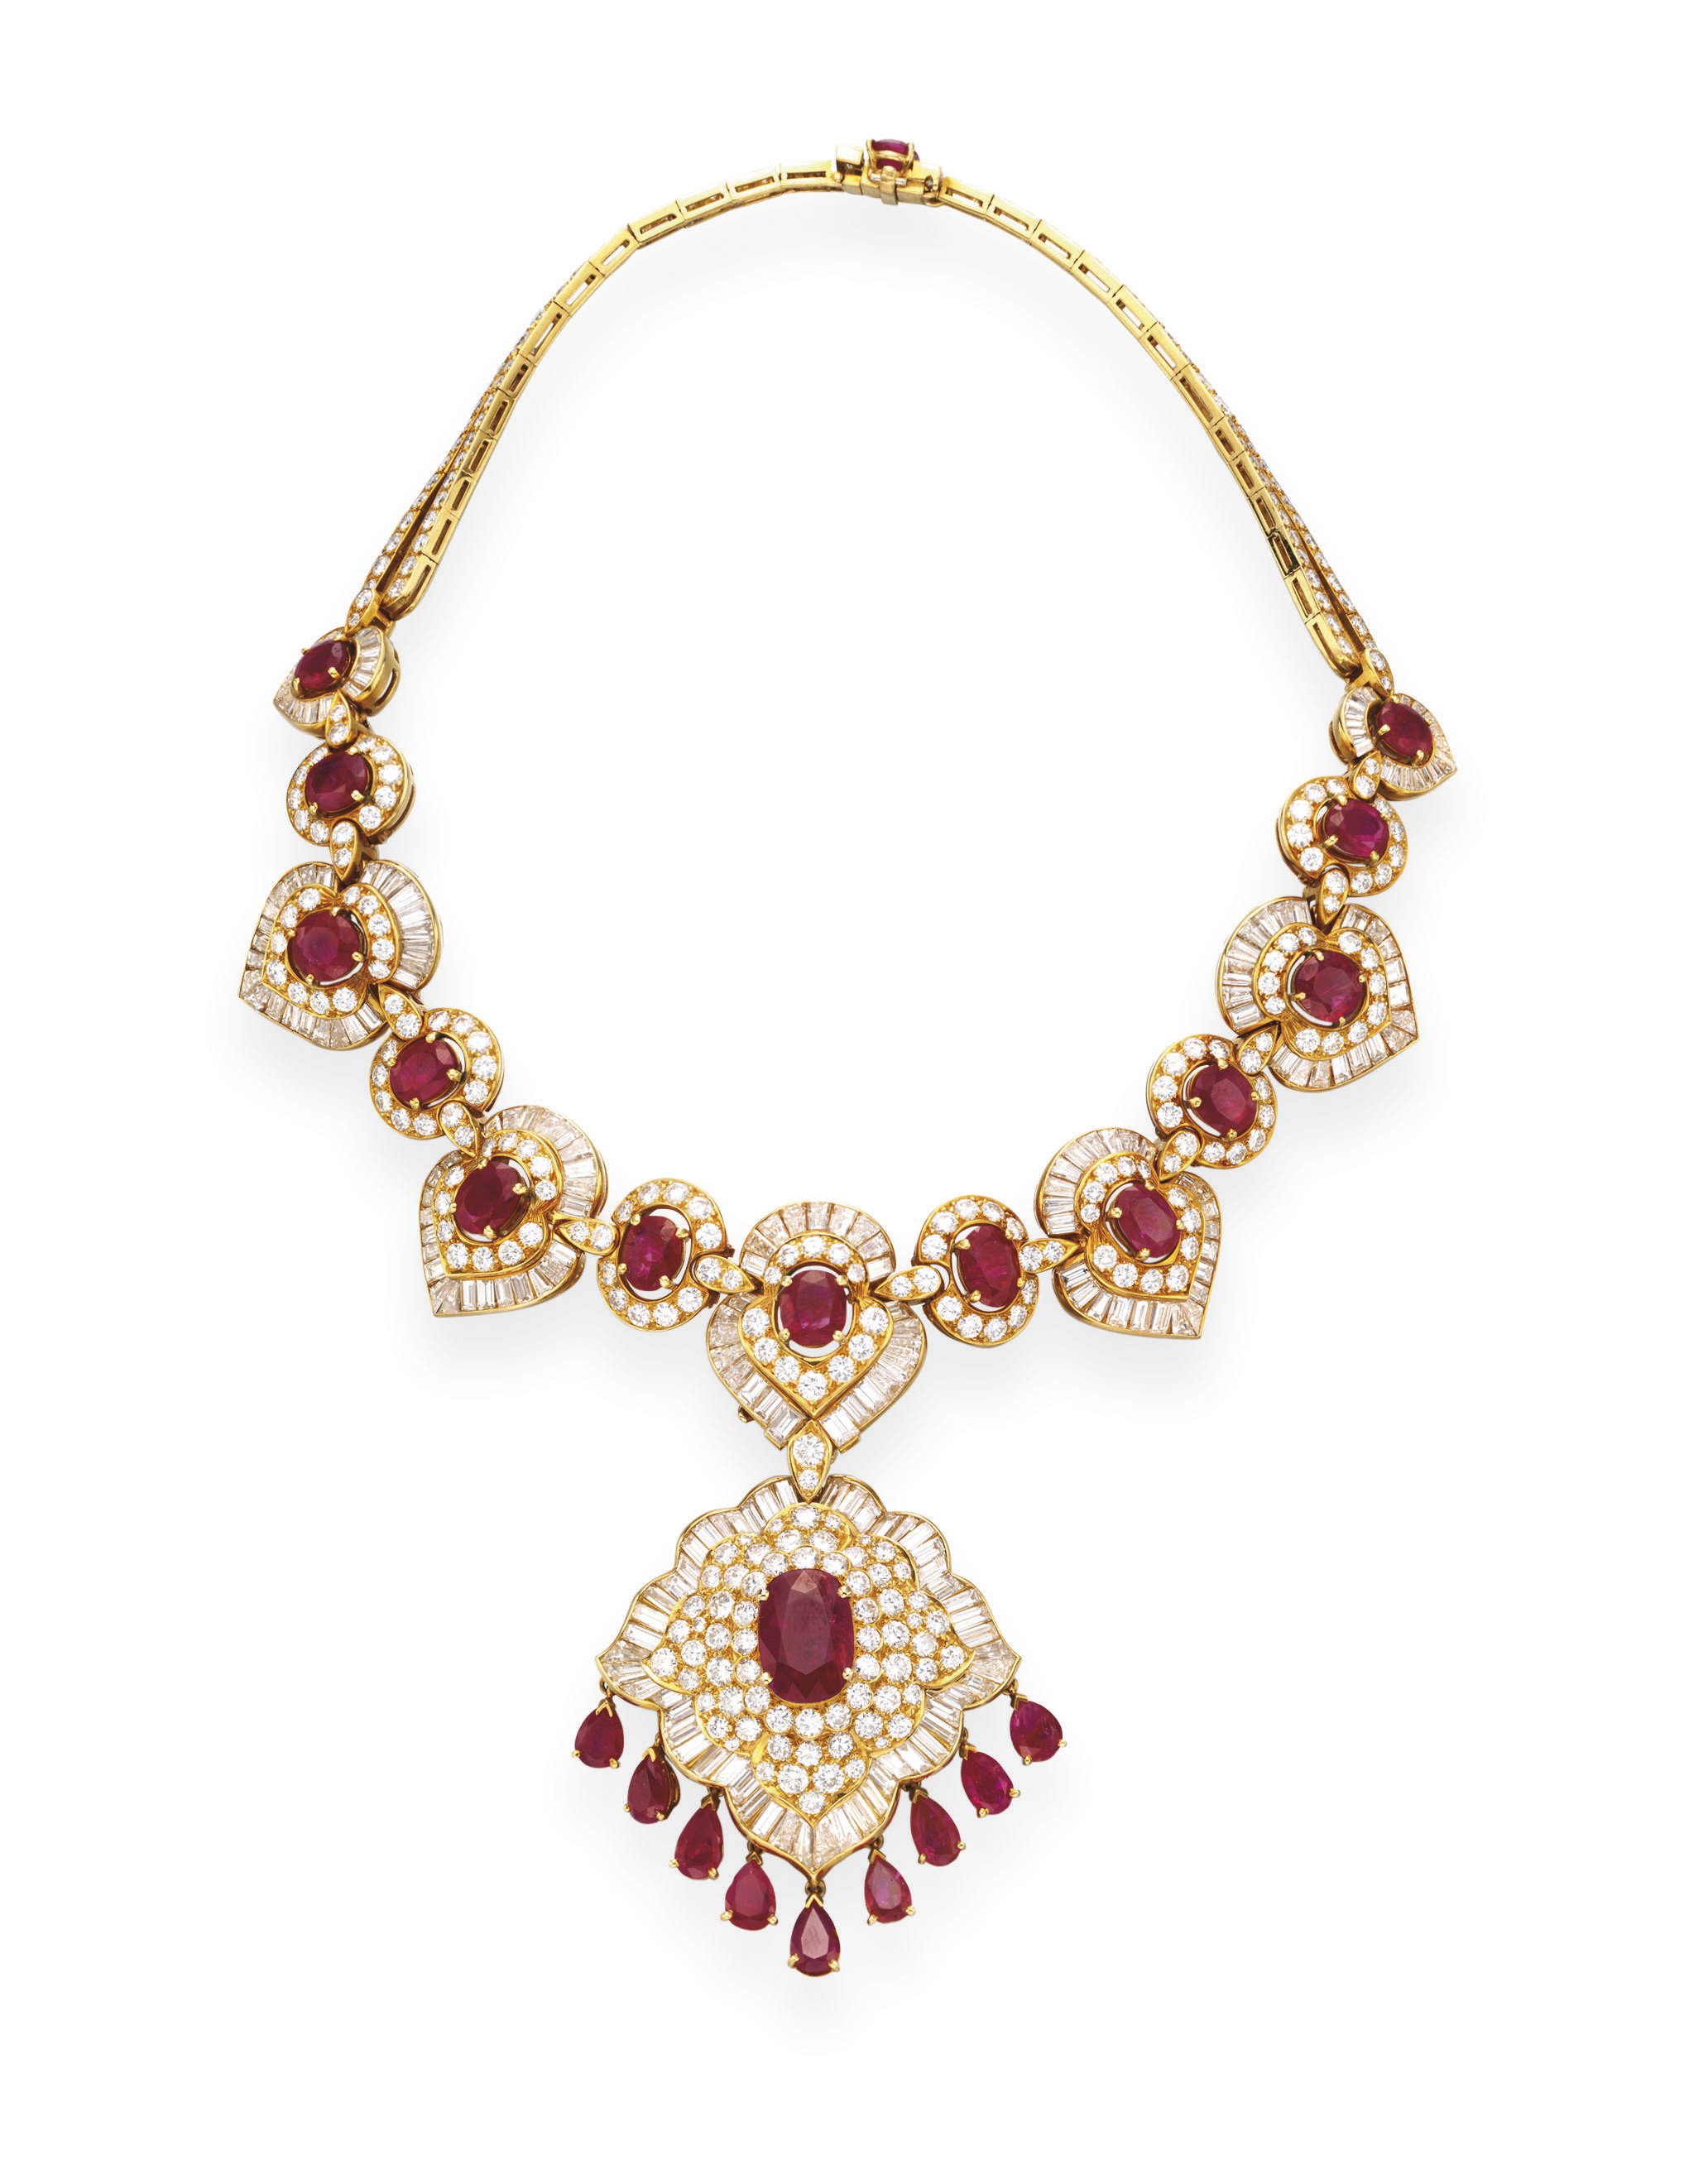 A RUBY AND DIAMOND NECKLACE, B